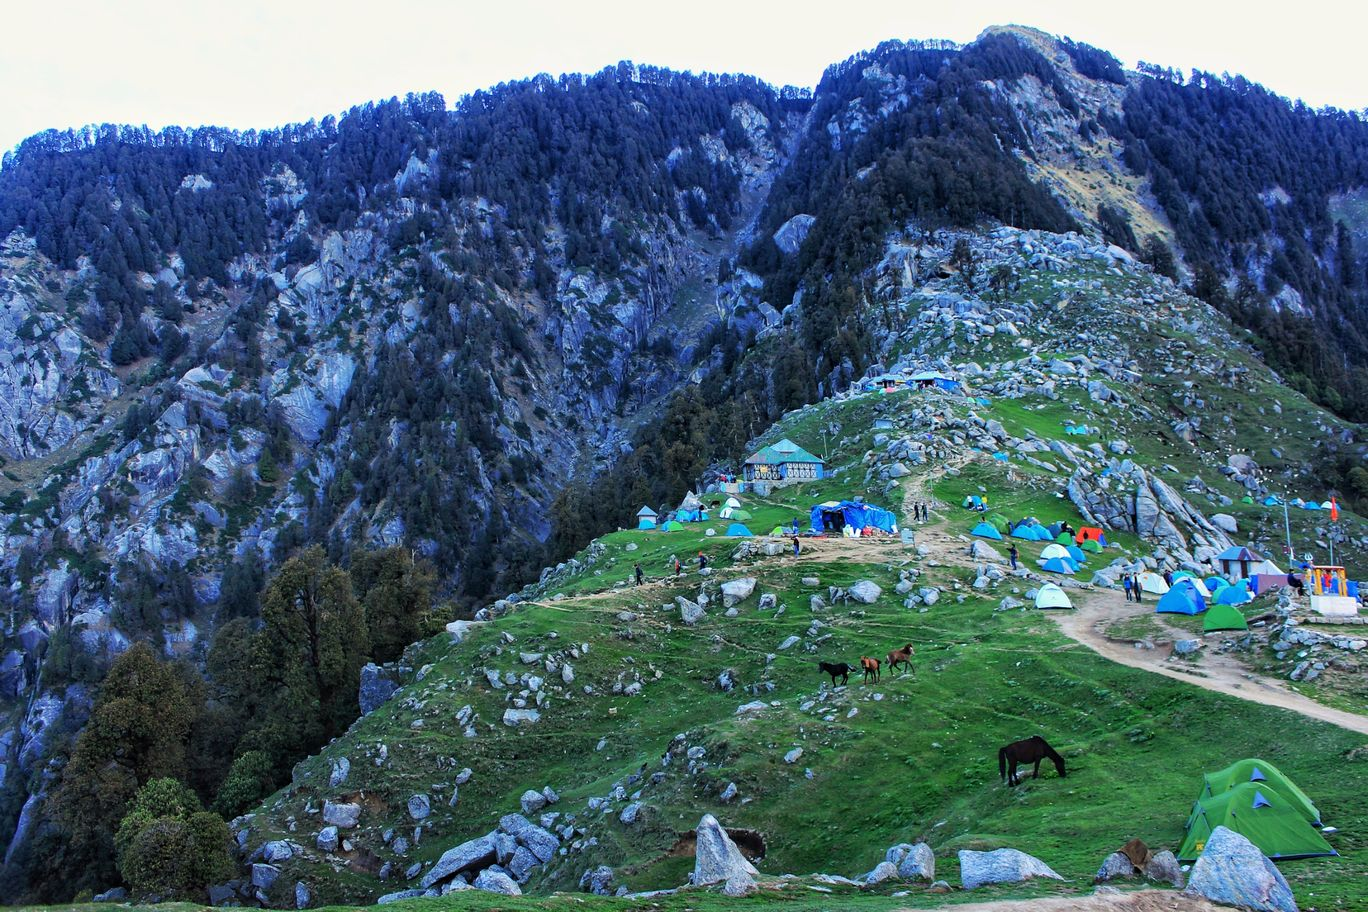 Photo of Triund Trek By Neha jain